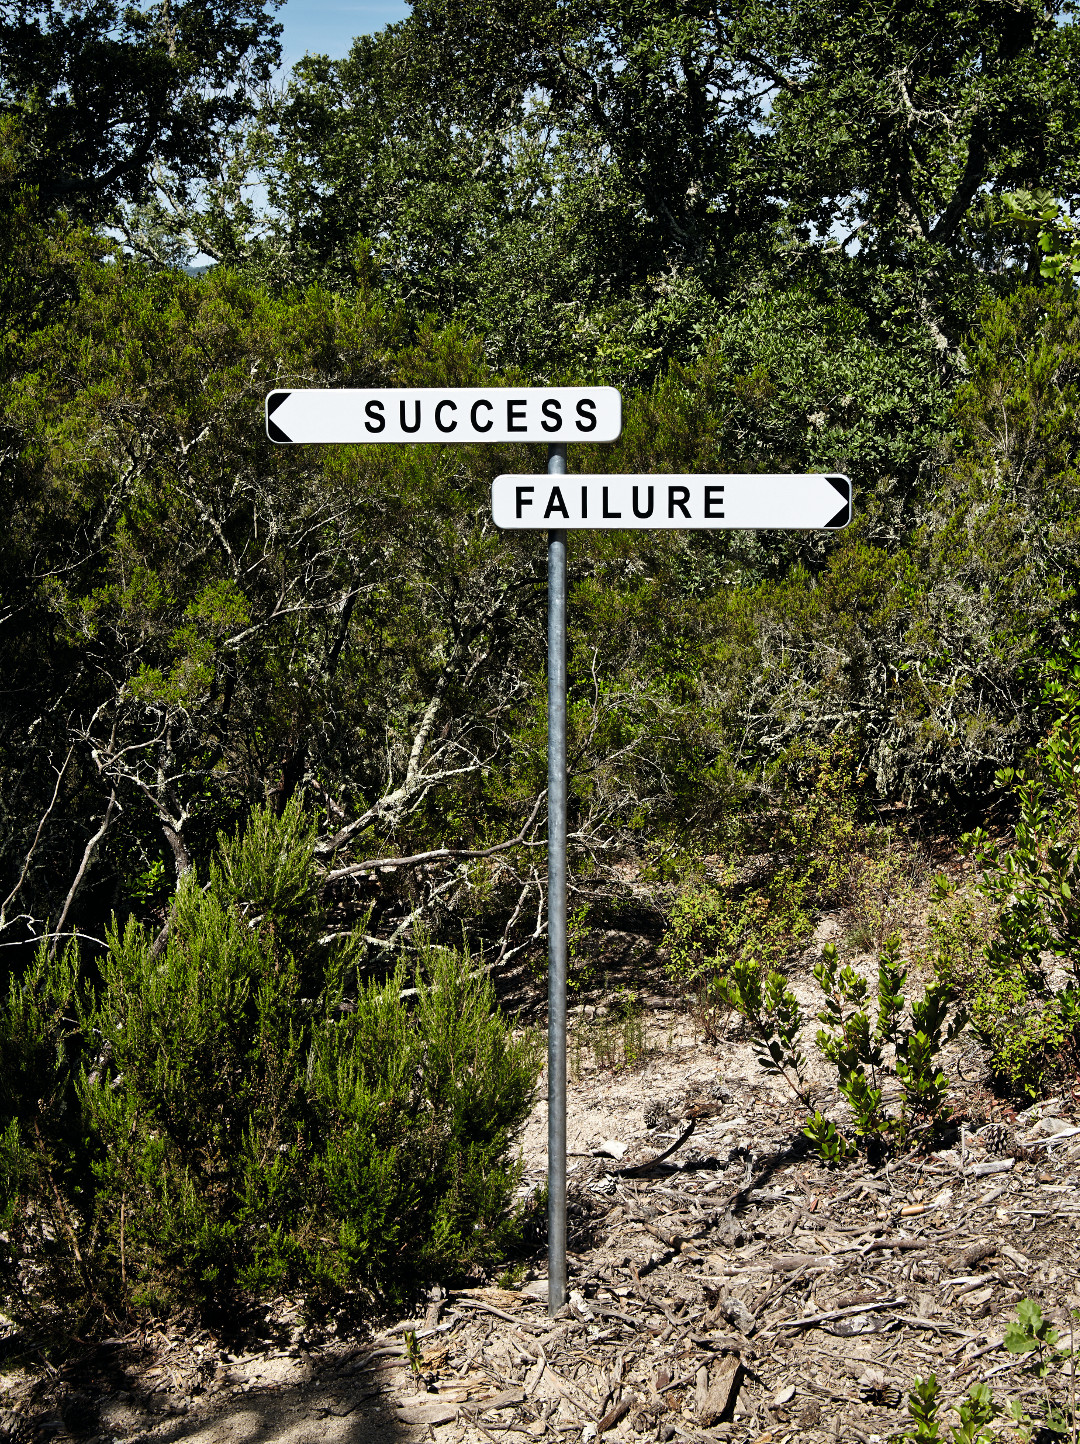 Success Failure, 2014, Domaine du Muy, France, by Gianni Motti